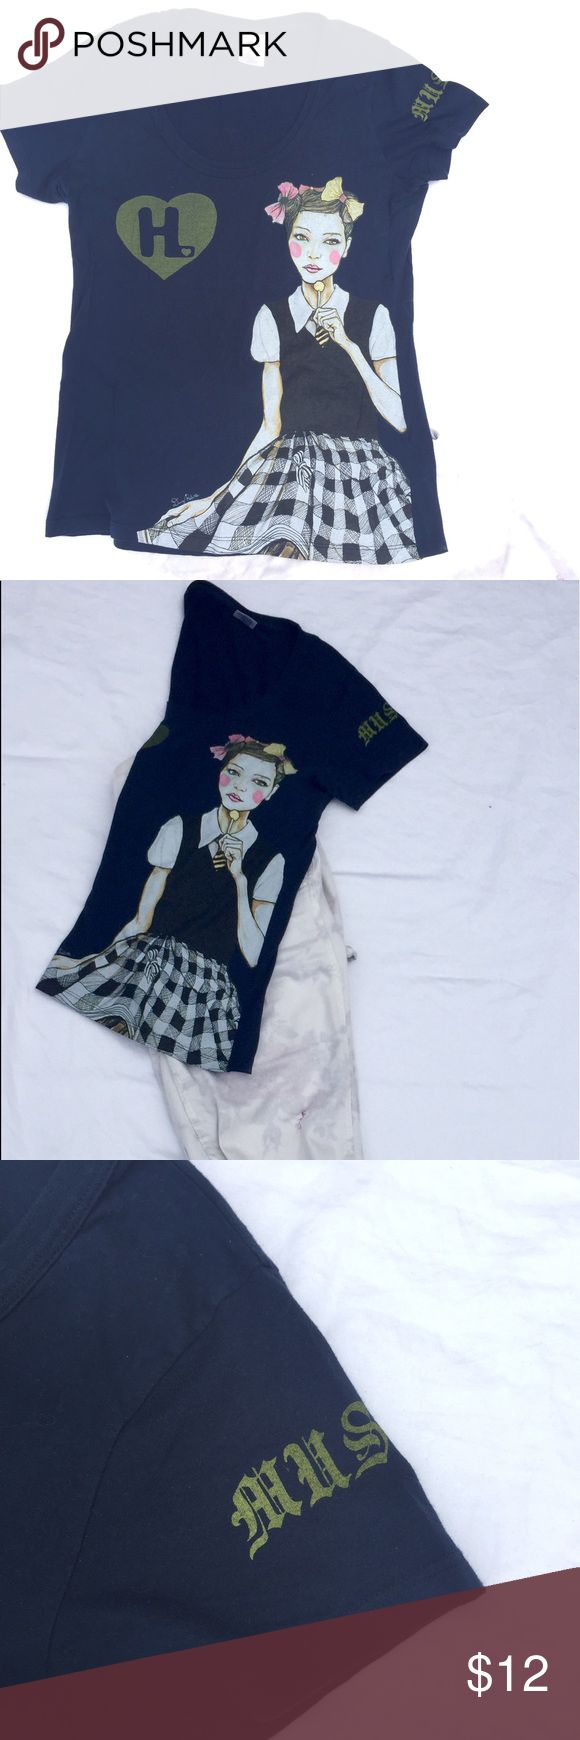 Harajuku Girls Graphic T-Shirt Navy Harajuku Girls tee featuring schoolgirl graphic. Great with leggings and a cardigan! Harajuku Lovers Tops Tees - Short Sleeve